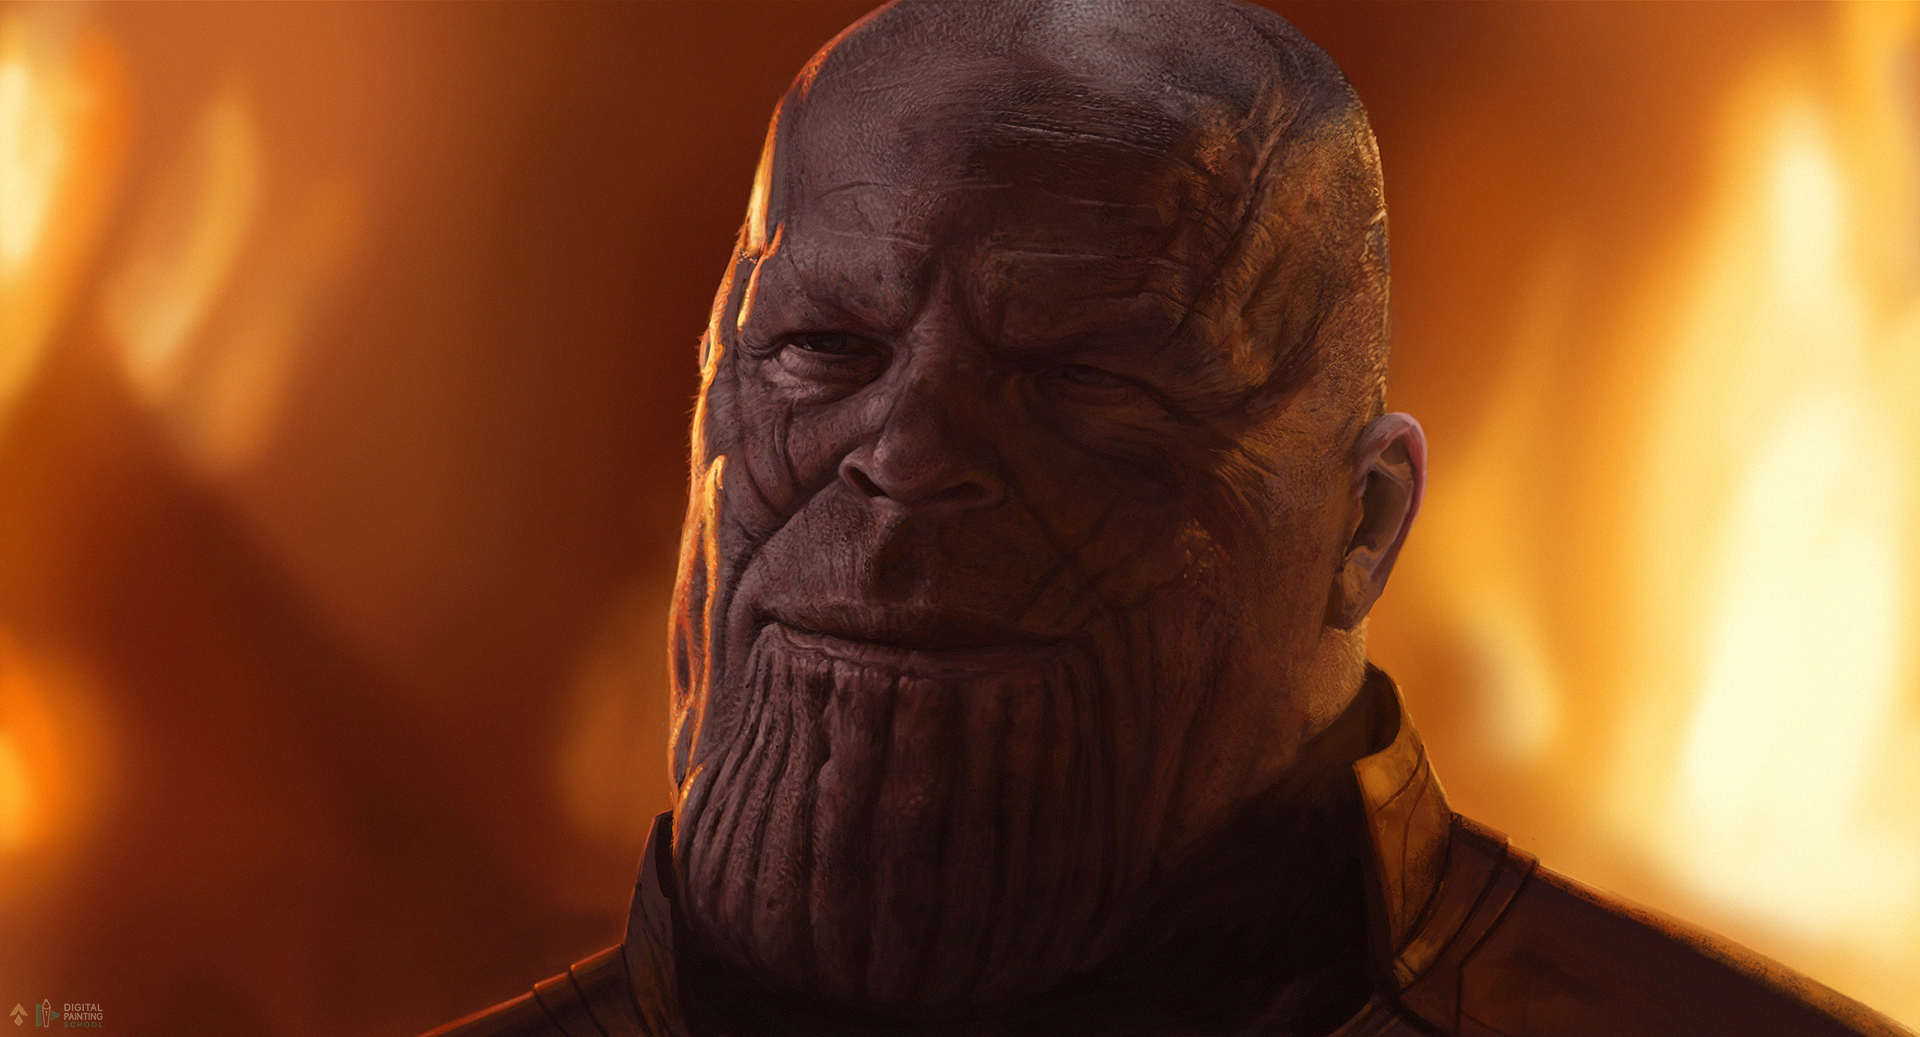 Tutoriel de digital painting : Comment peindre Thanos